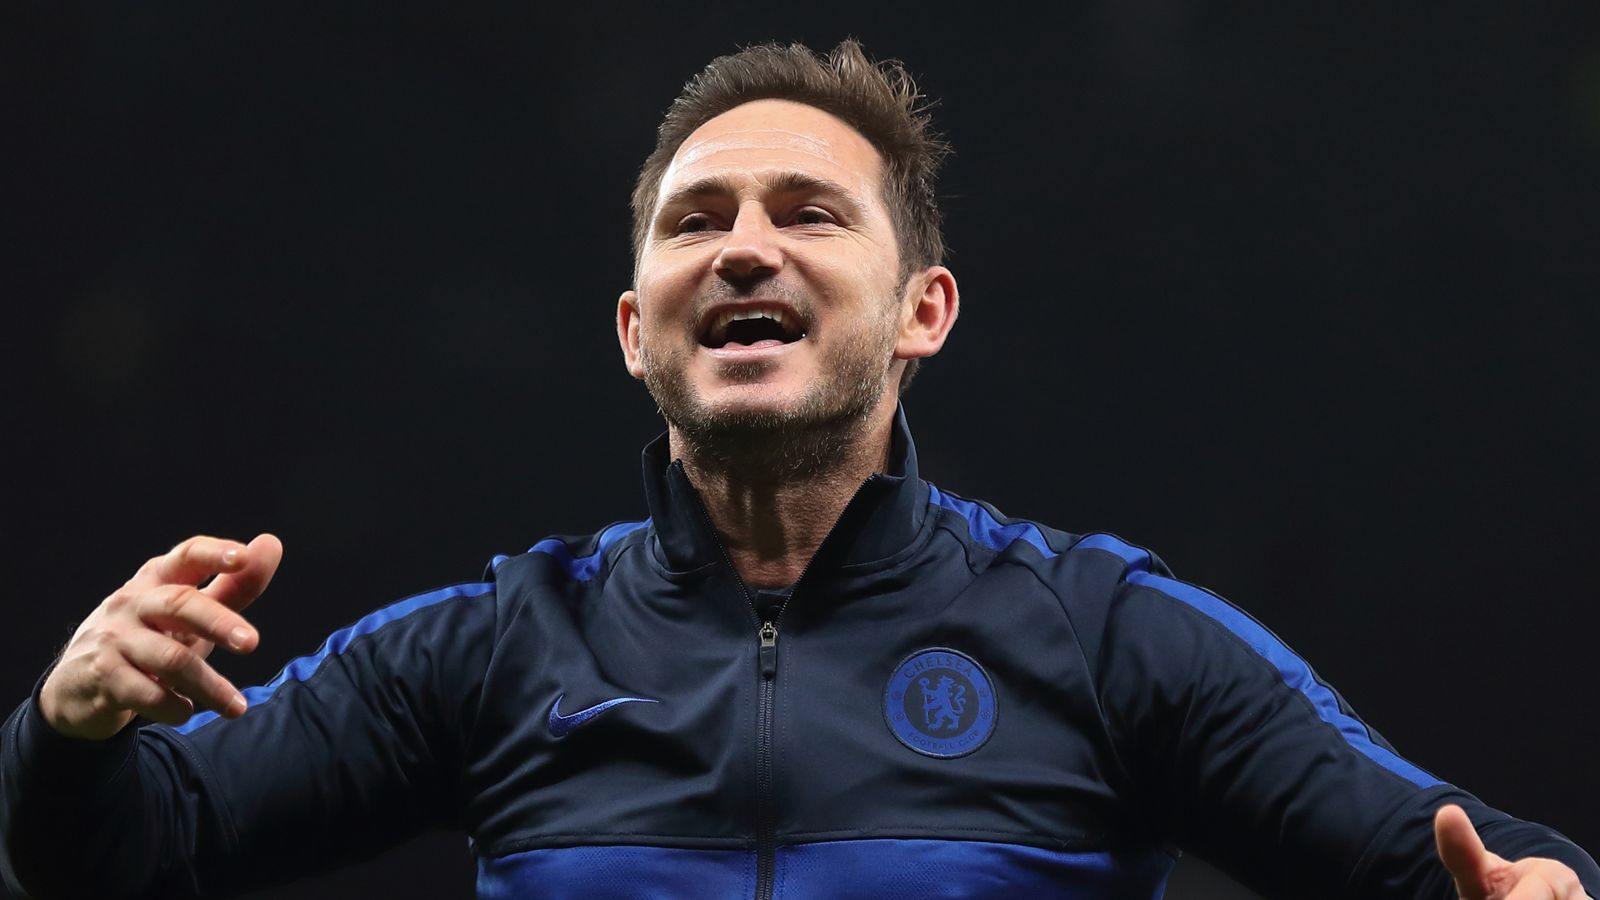 Frank Lampard says Chelsea will learn from Tottenham's defeat to Bayern Munich